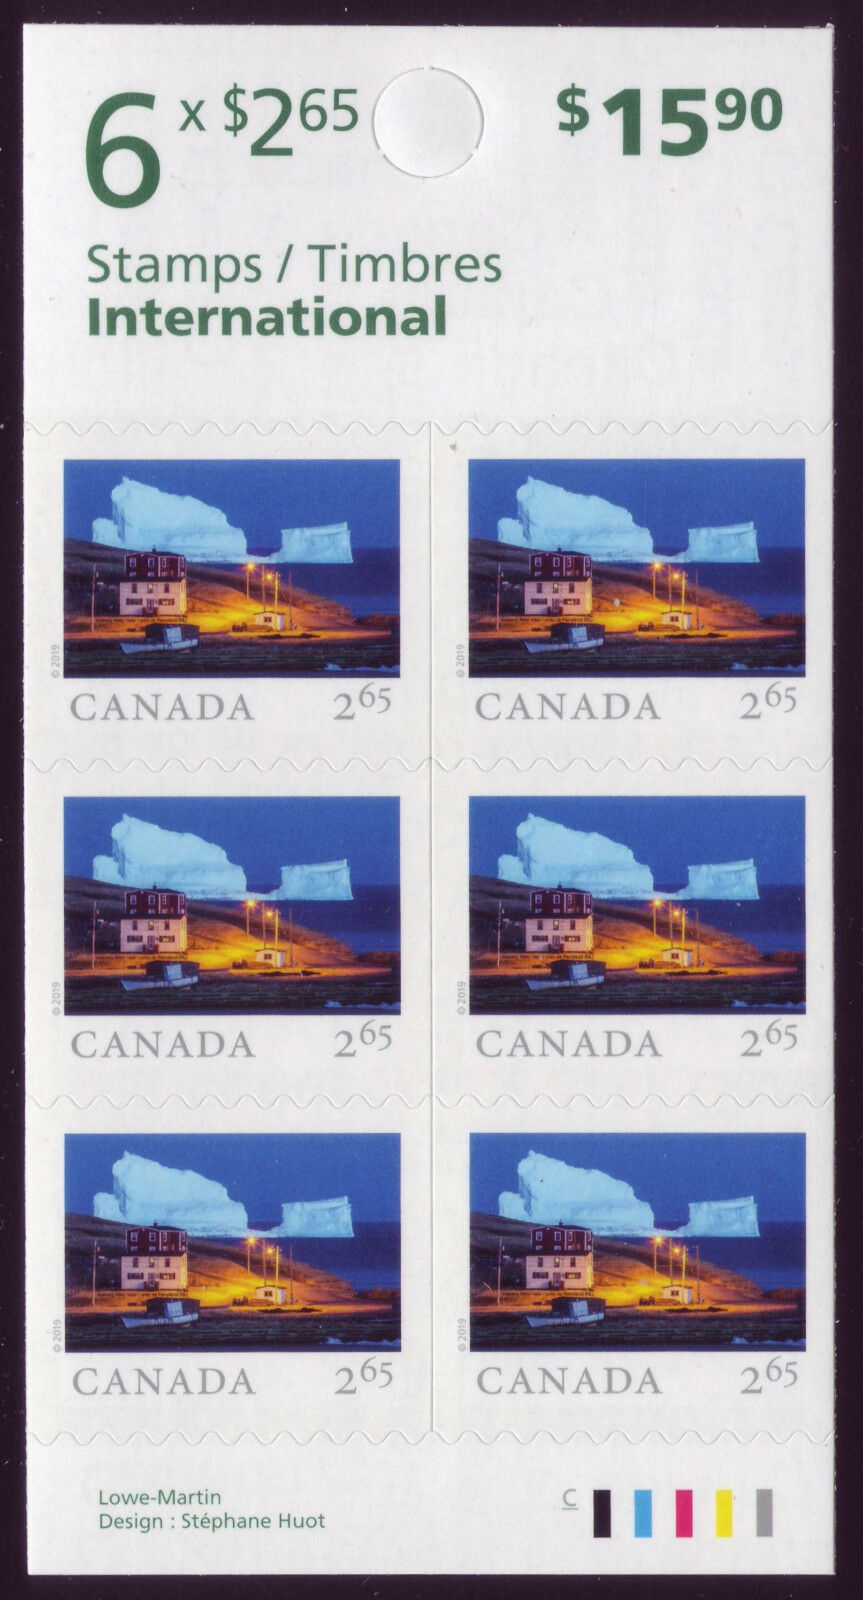 Canada - From Far and Wide (January 14, 2019) international rate booklet of 6